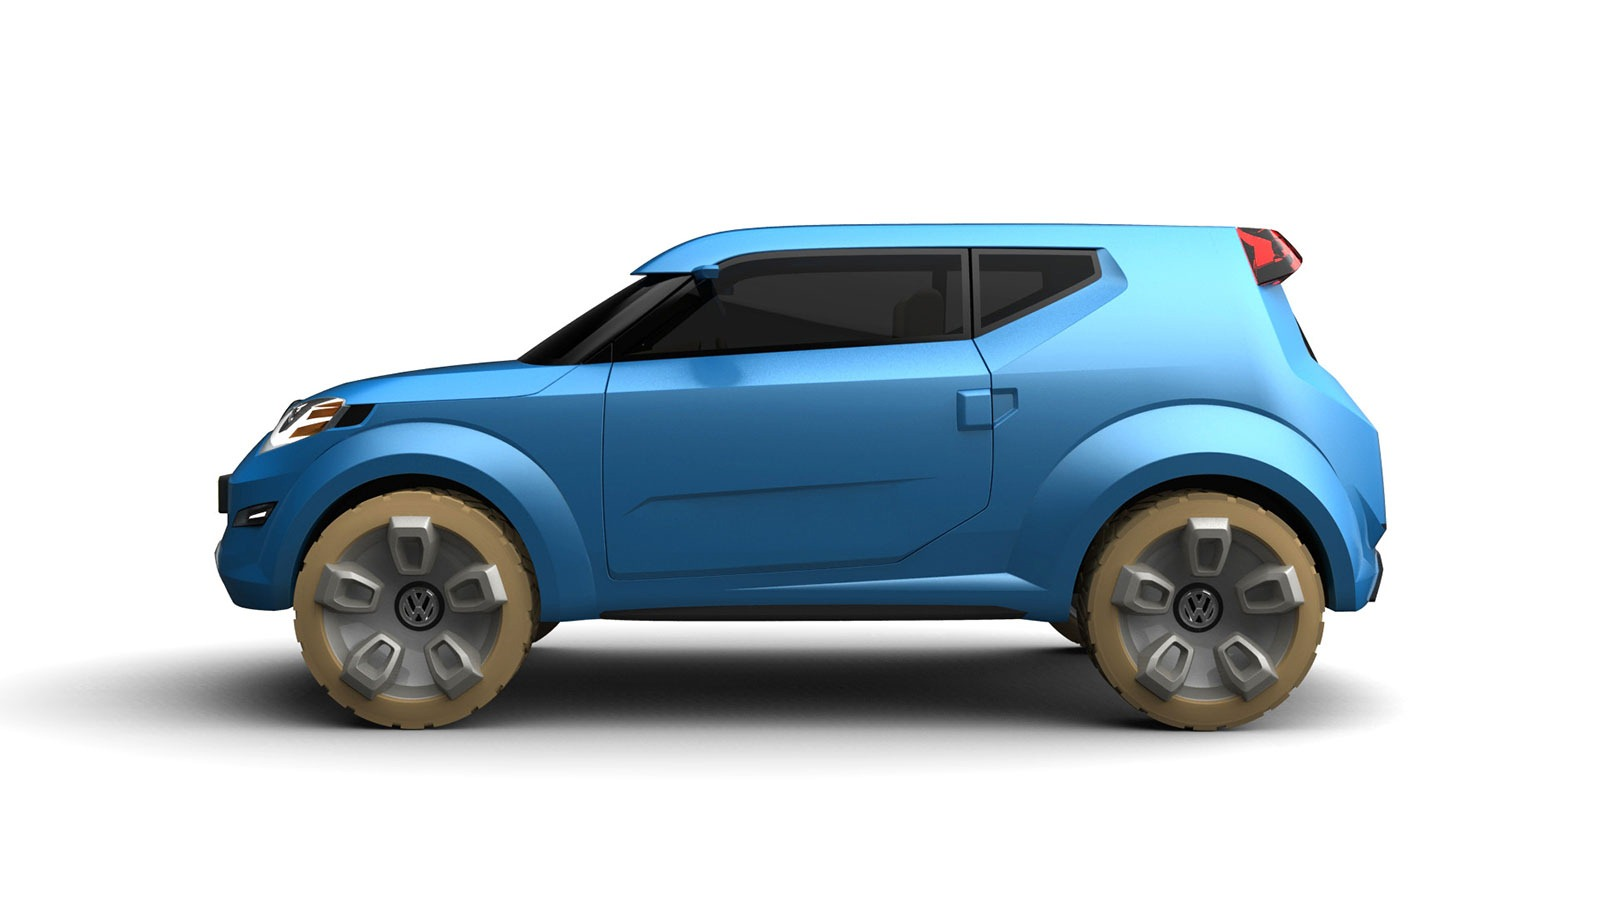 2012 VW Rocky 3-Door SUV Design Concept